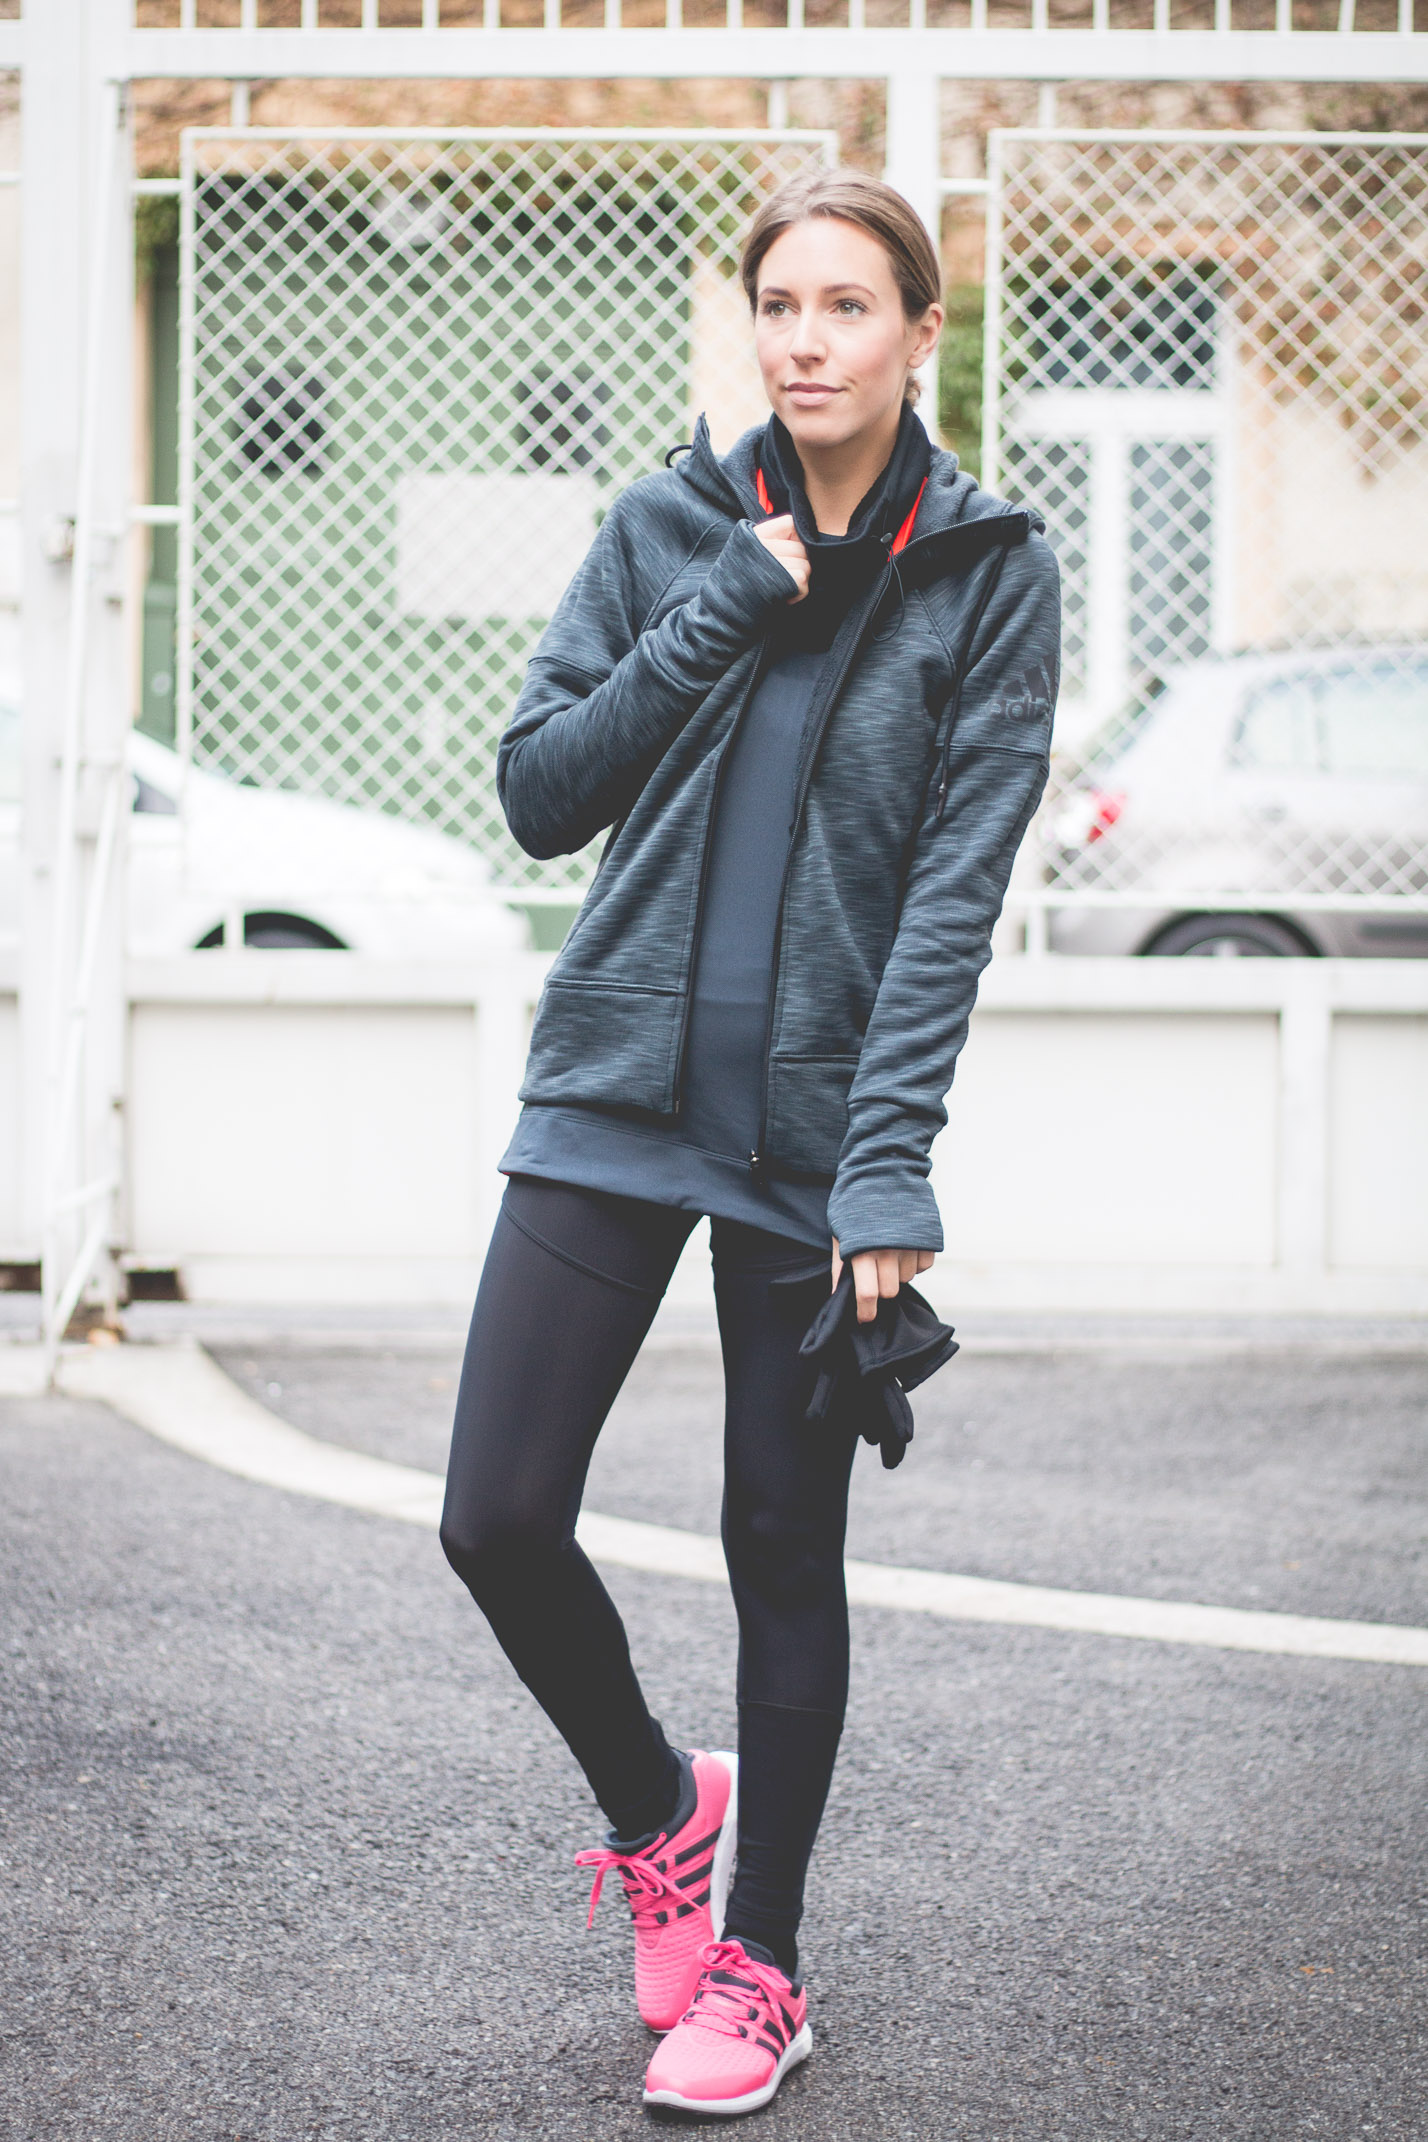 Adidas Climaheat - Running in Winter | Love Daily Dose